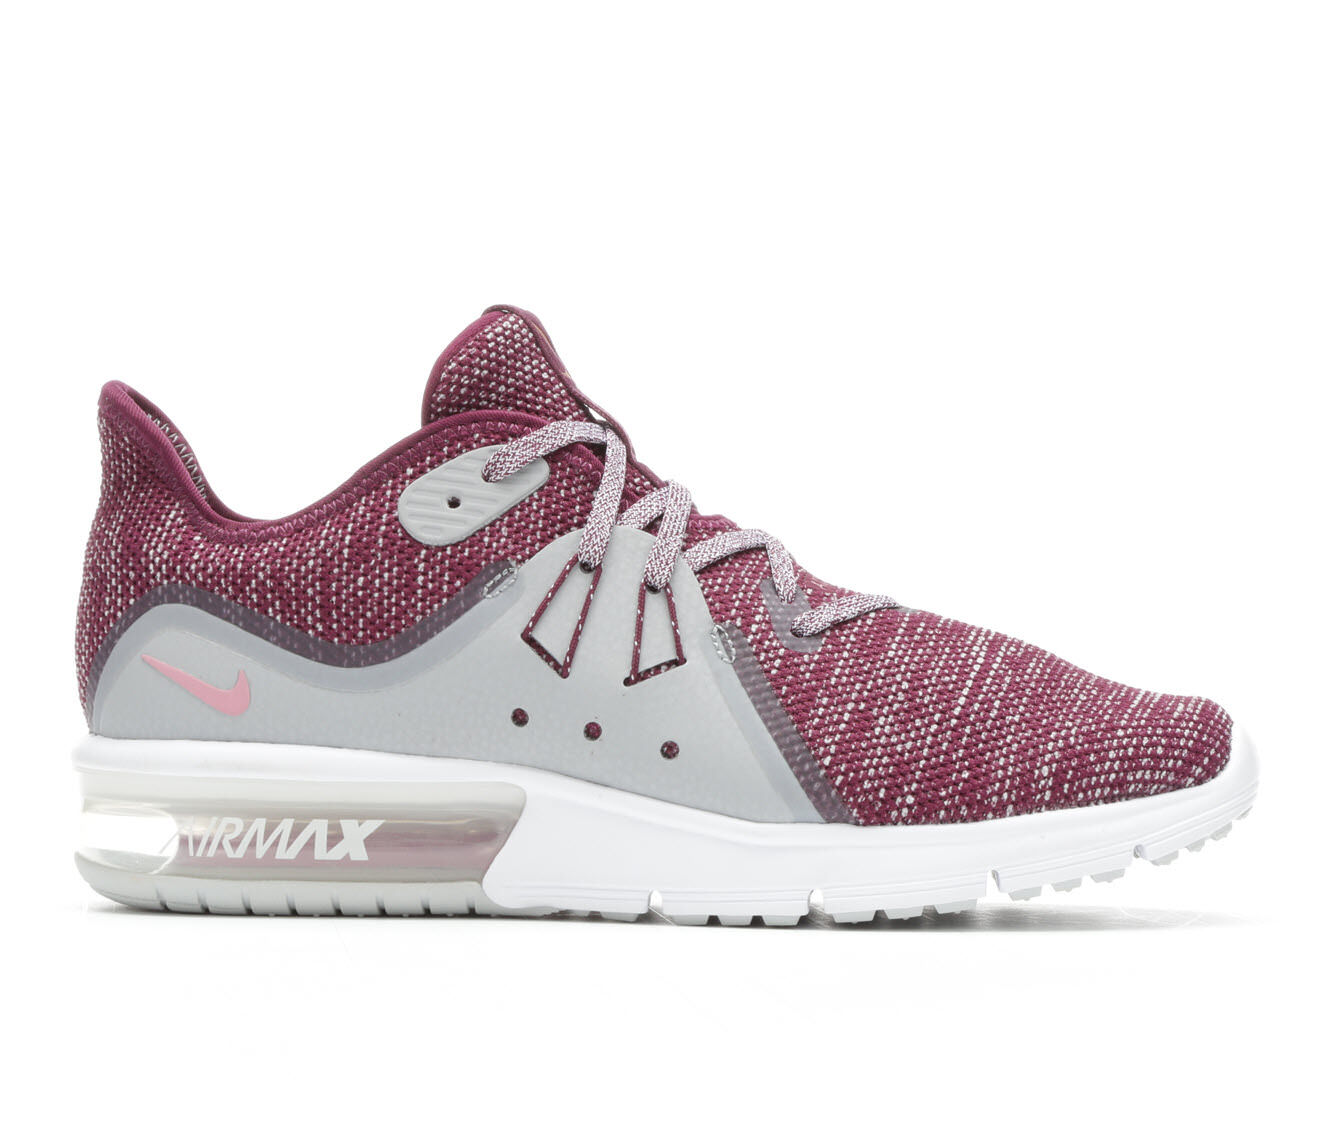 Womens Nike Air Max Sequent 3 Running Shoes